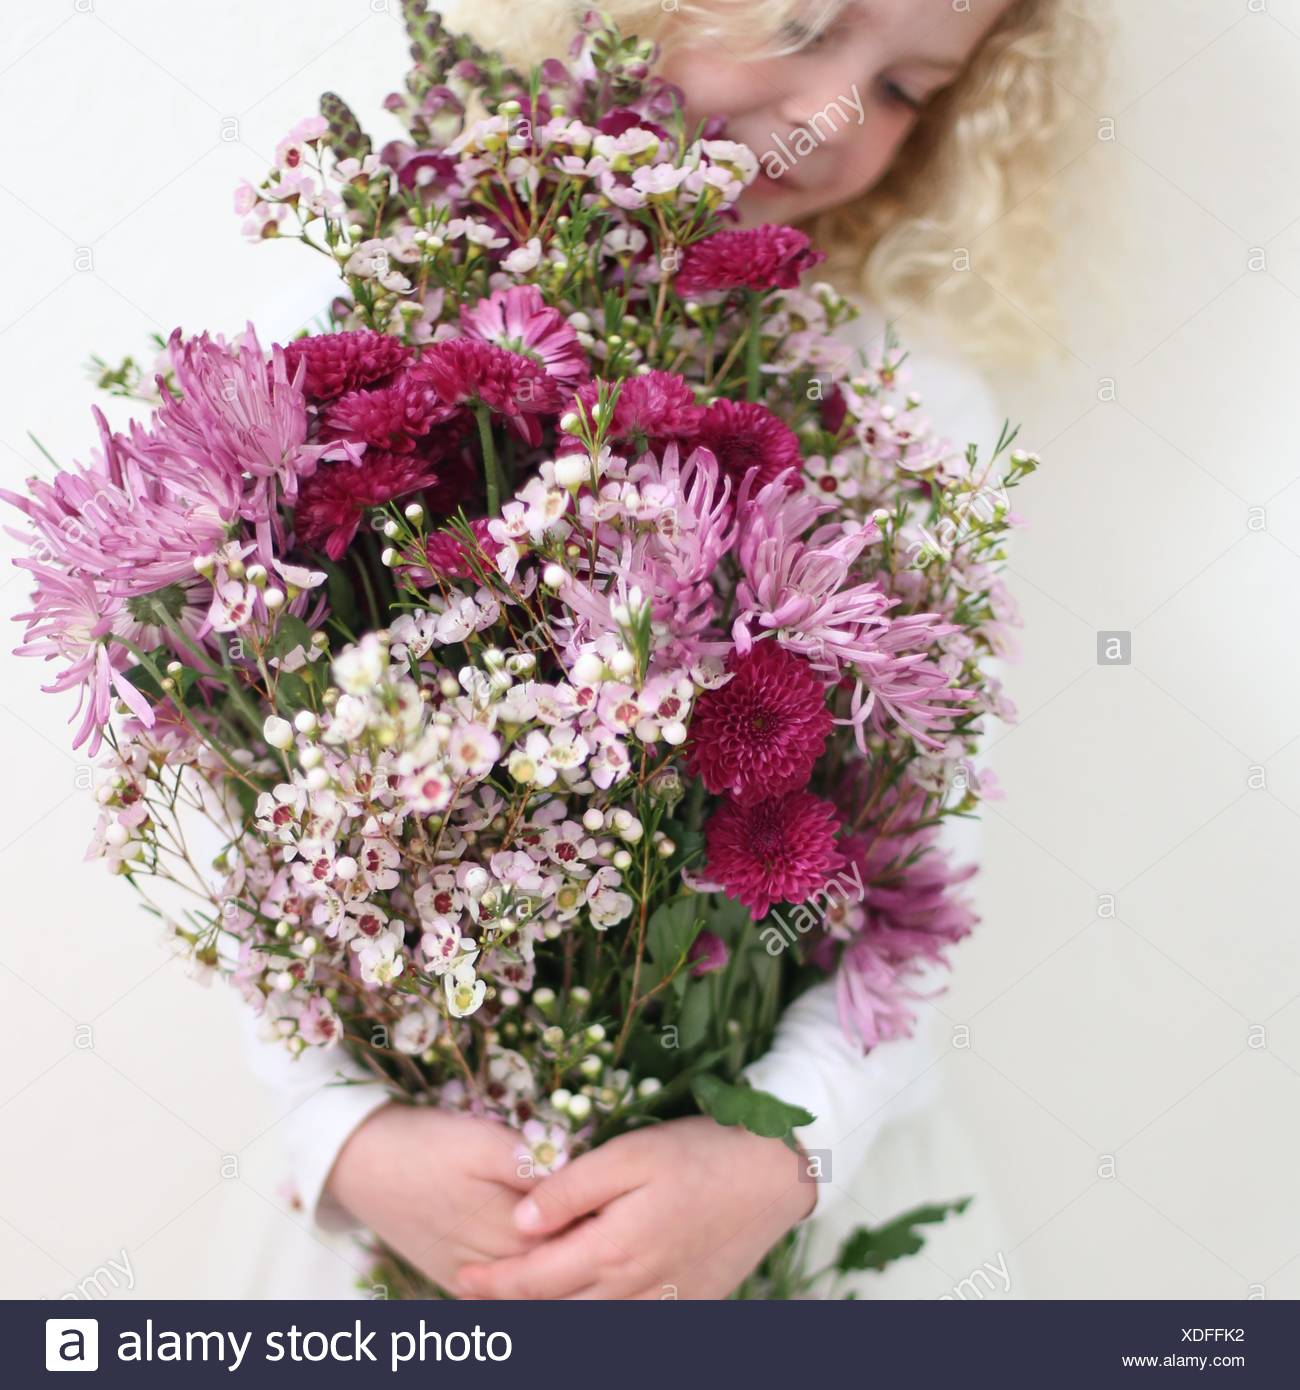 Girl Holding Large Bunch Of Pink Flowers Stock Photo 283697990 Alamy